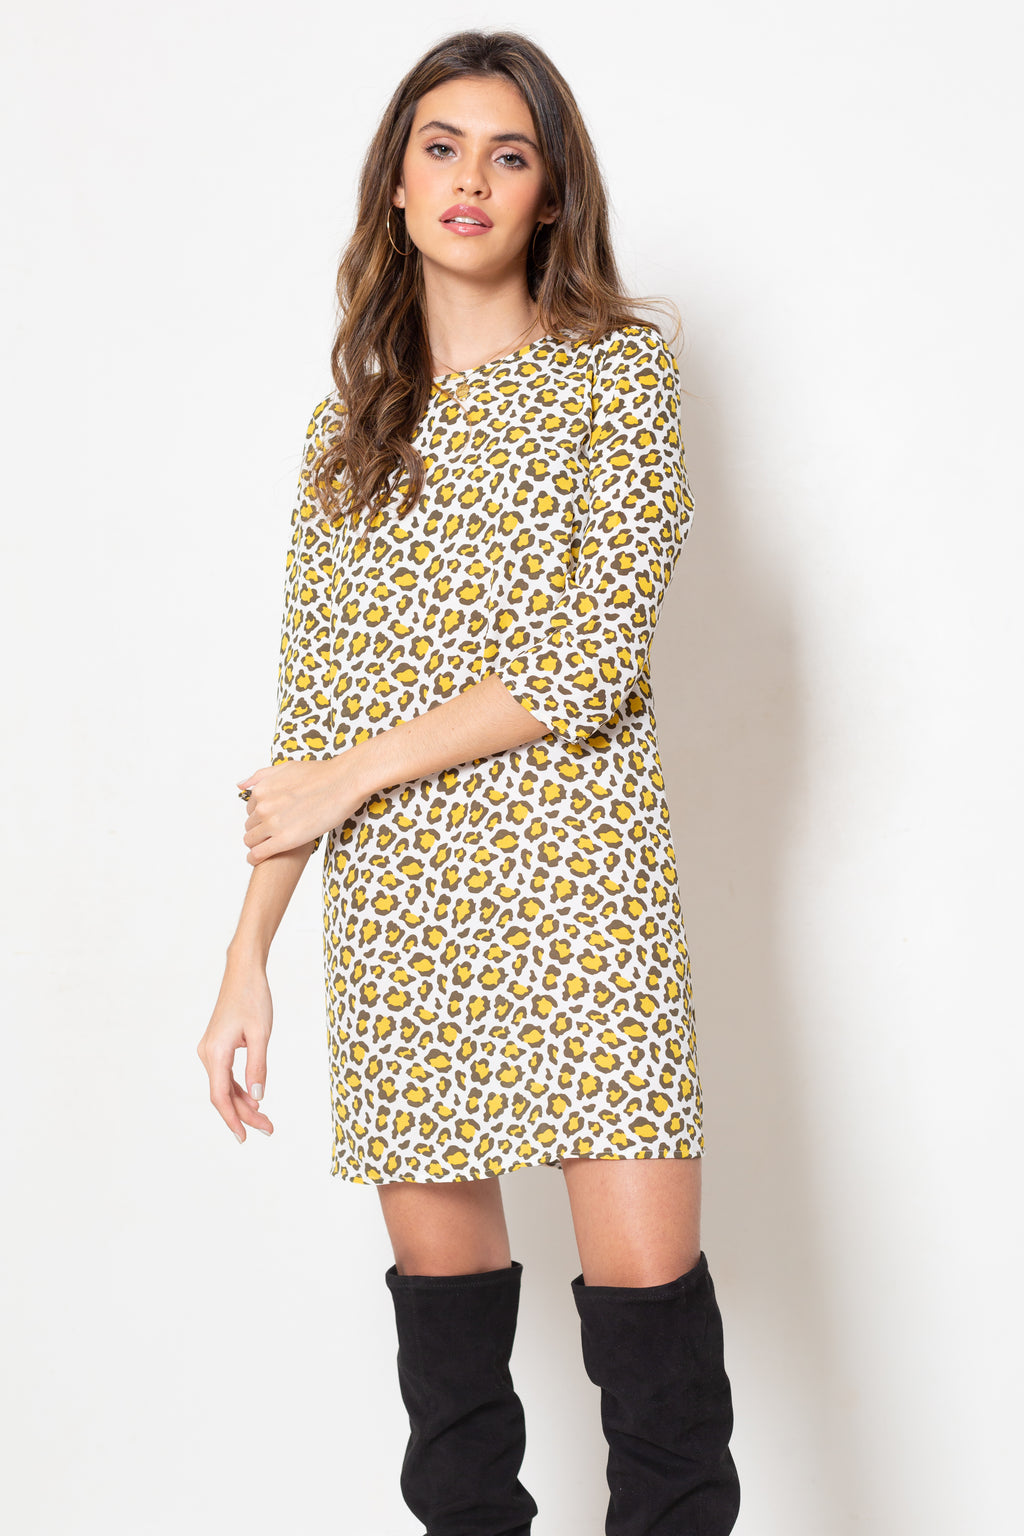 Vestido Anne Yellow Cheetah